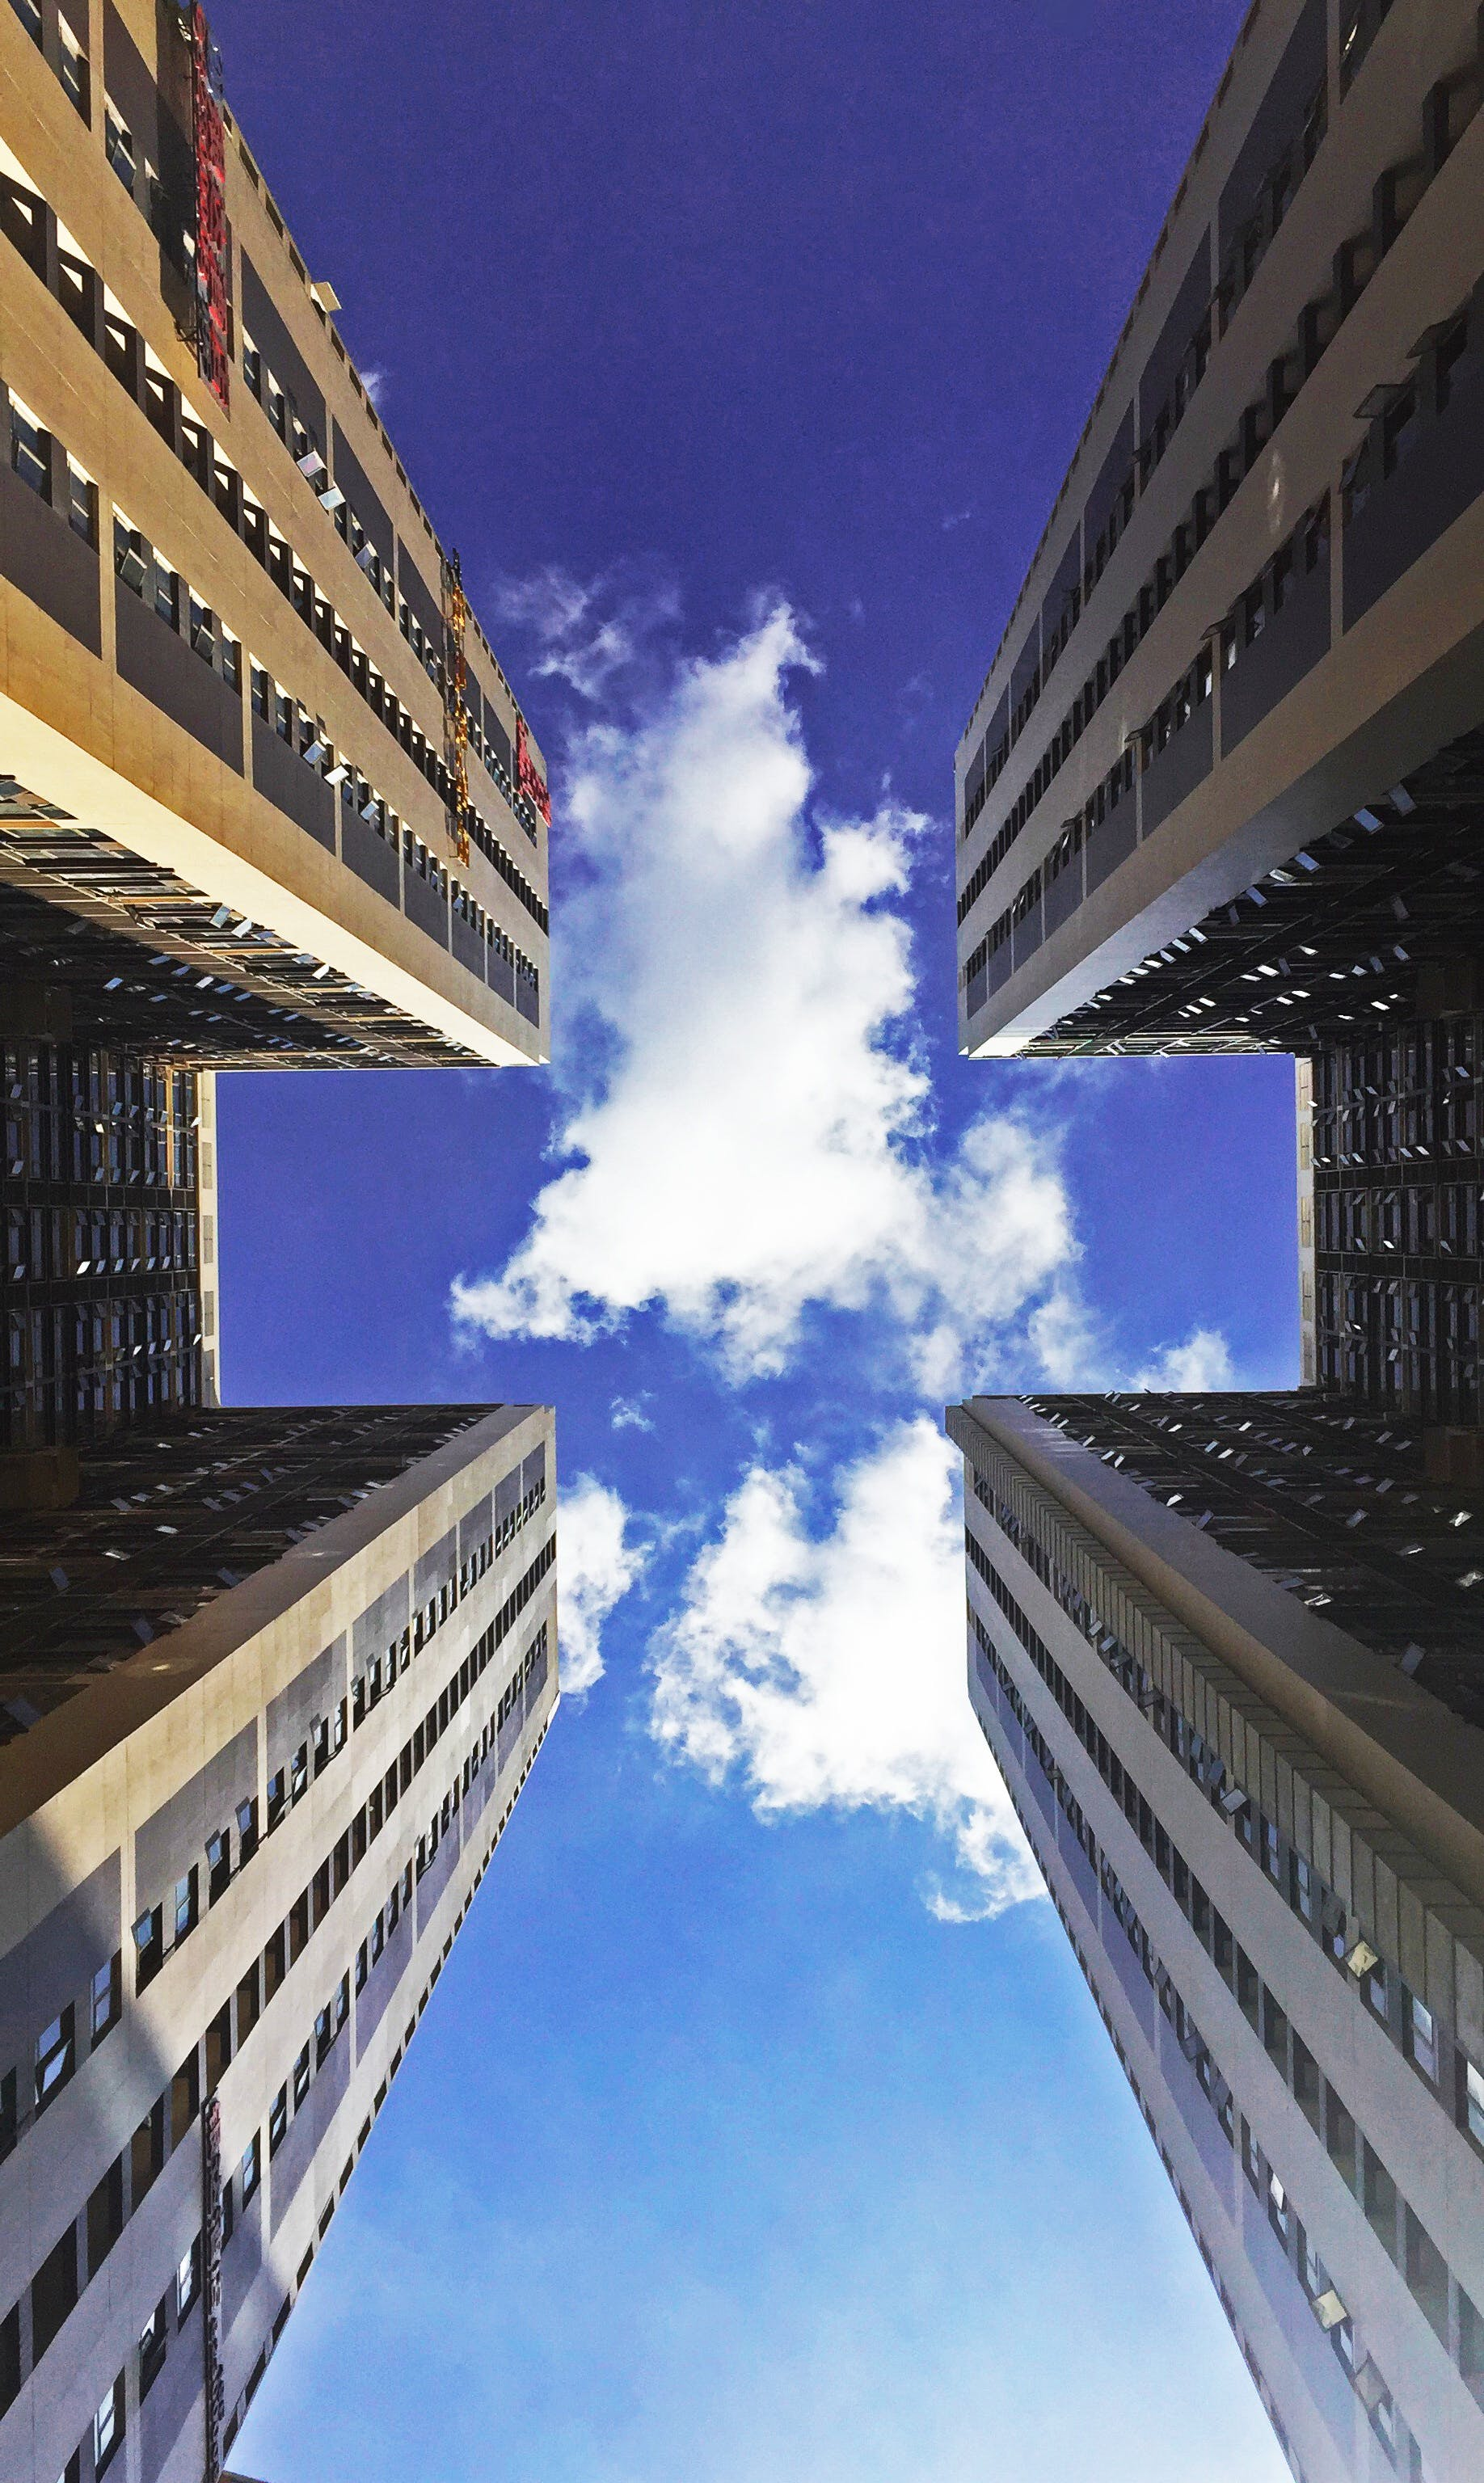 low angle view of skyscraper against cloudy sky  u00b7 free stock photo